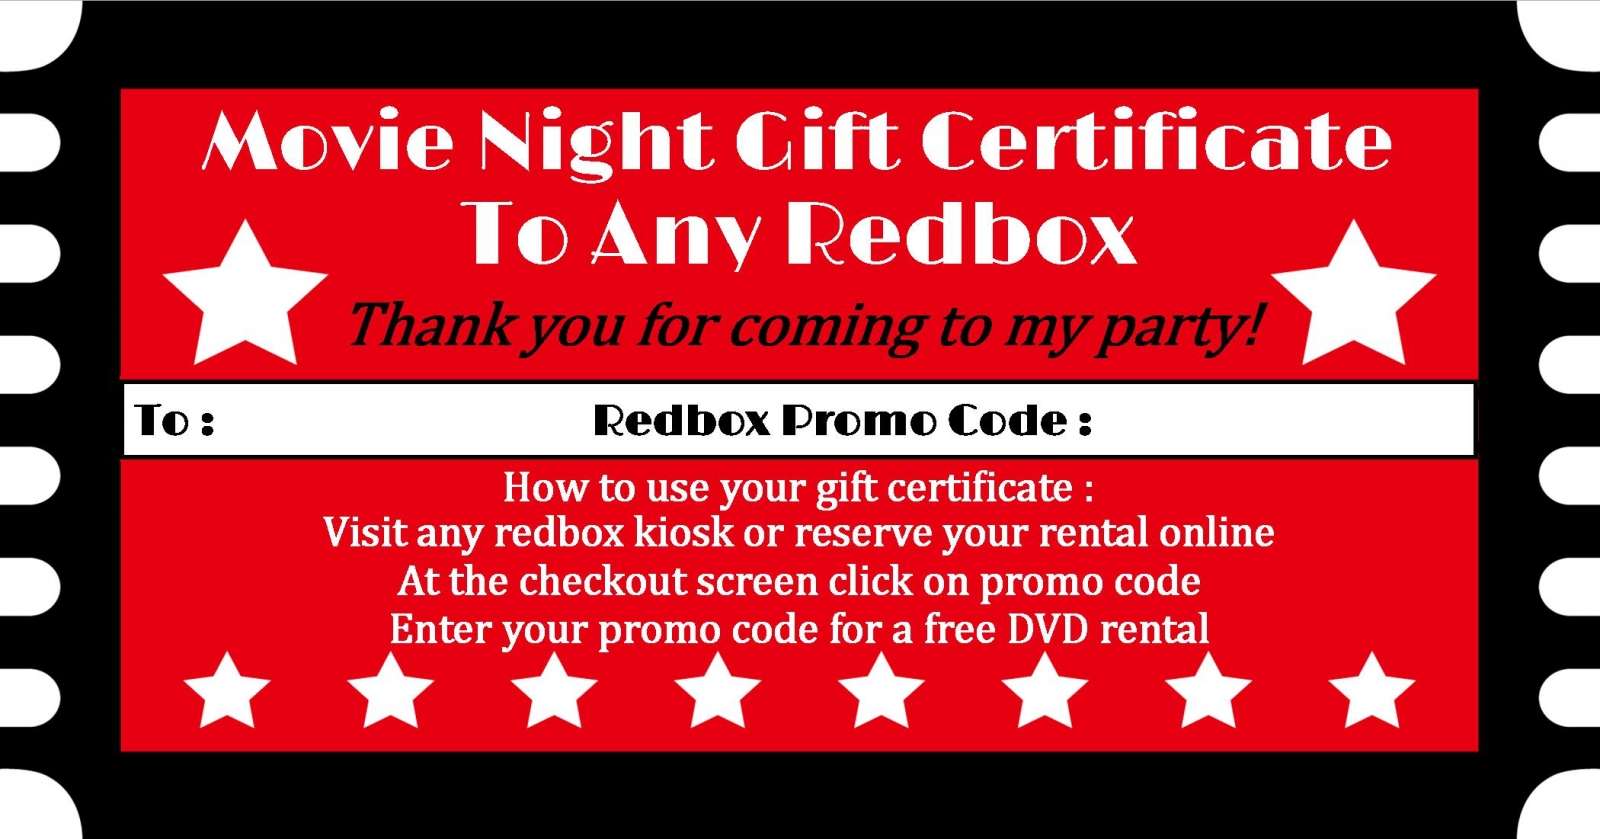 graphic relating to Printable Redbox Gift Cards titled Redbox Printable - Birthday Social gathering Desire - Electronic Record - Your self Print